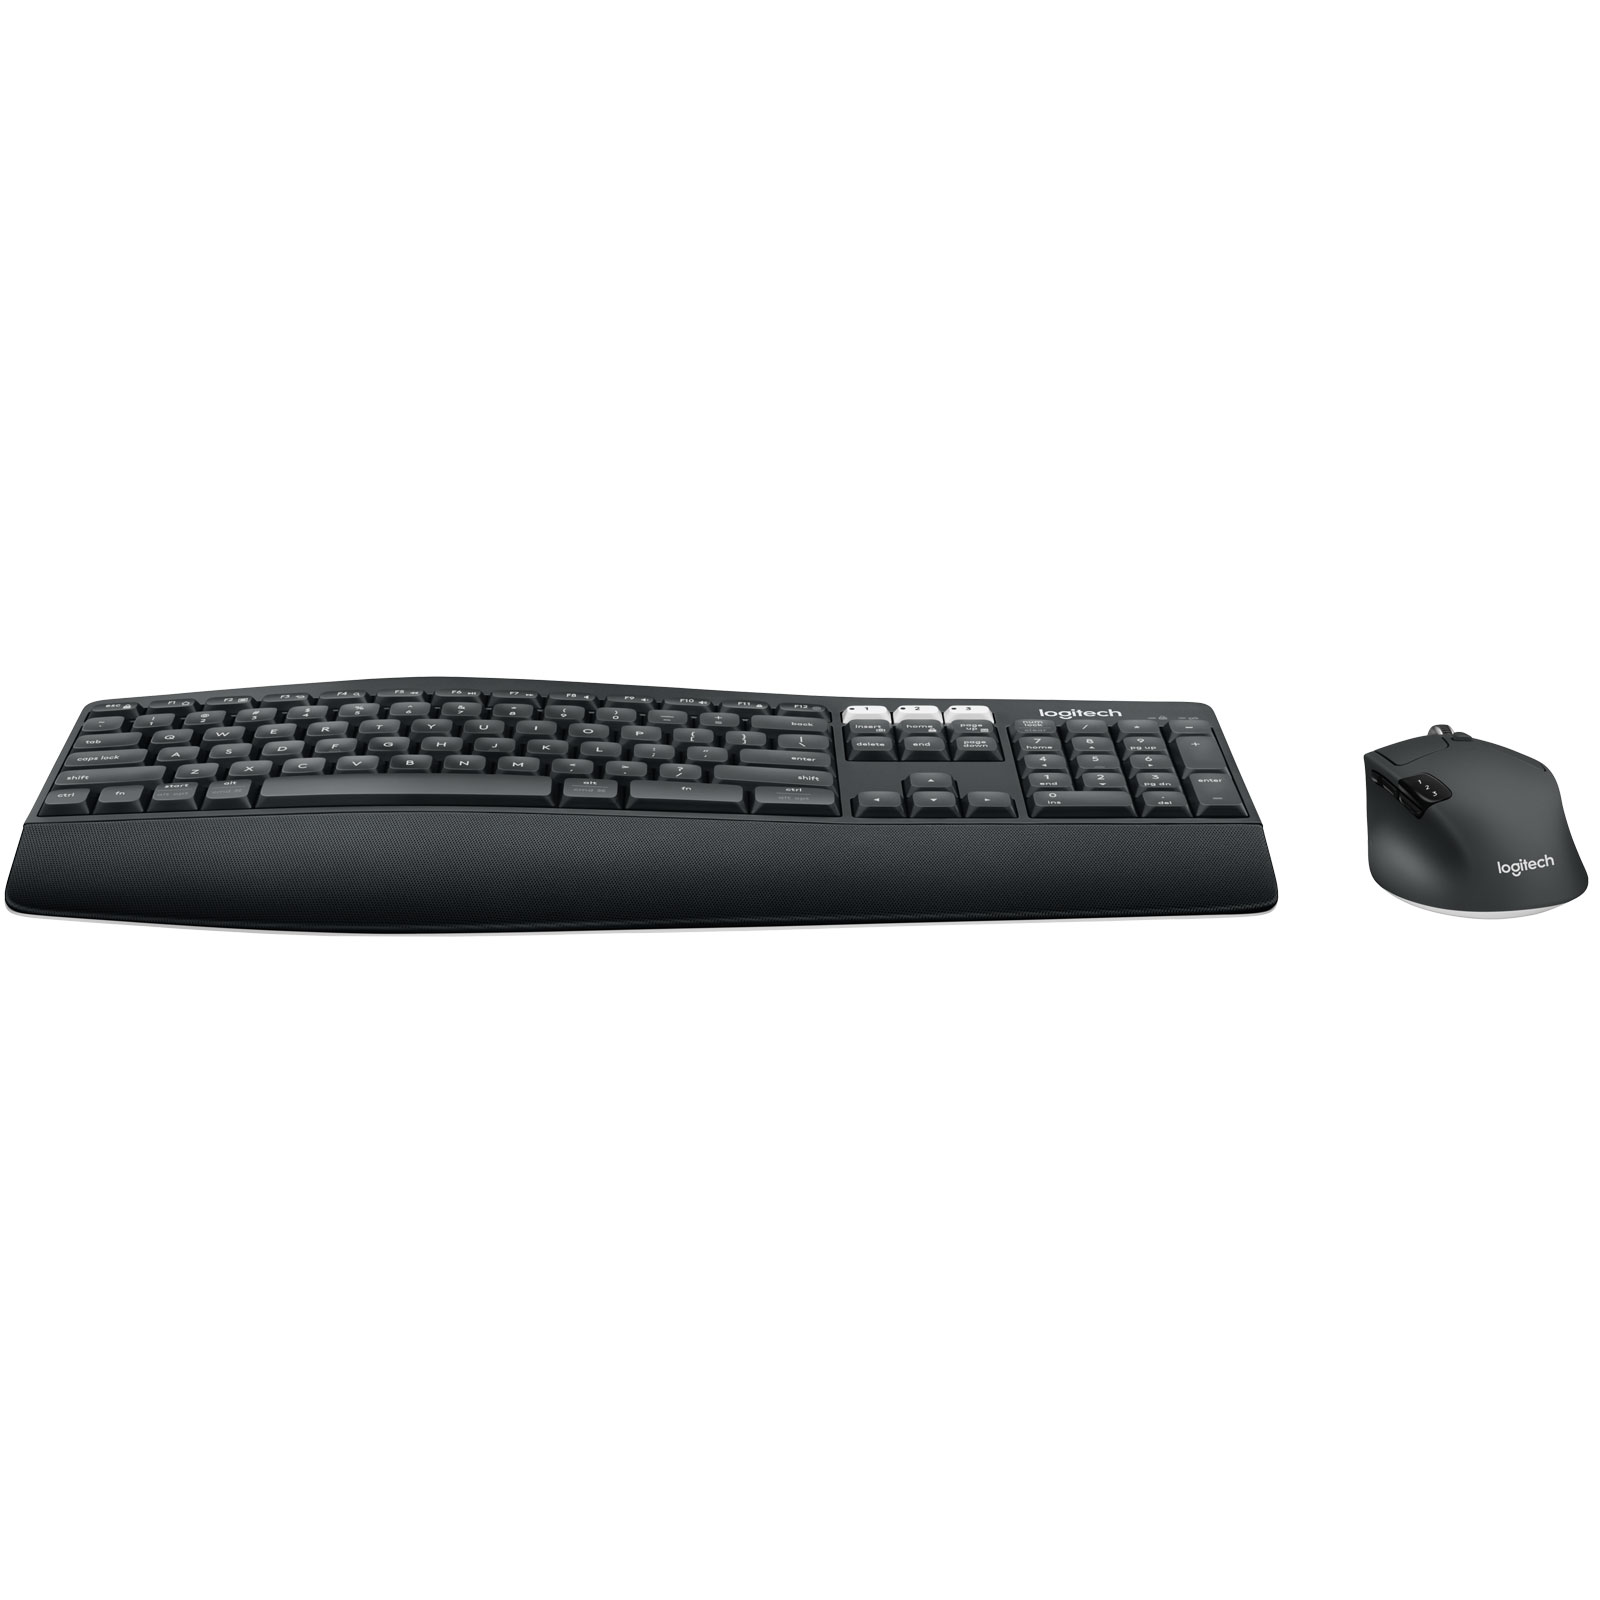 Logitech MK850 Performance - Pack Clavier/Souris - Cybertek.fr - 3